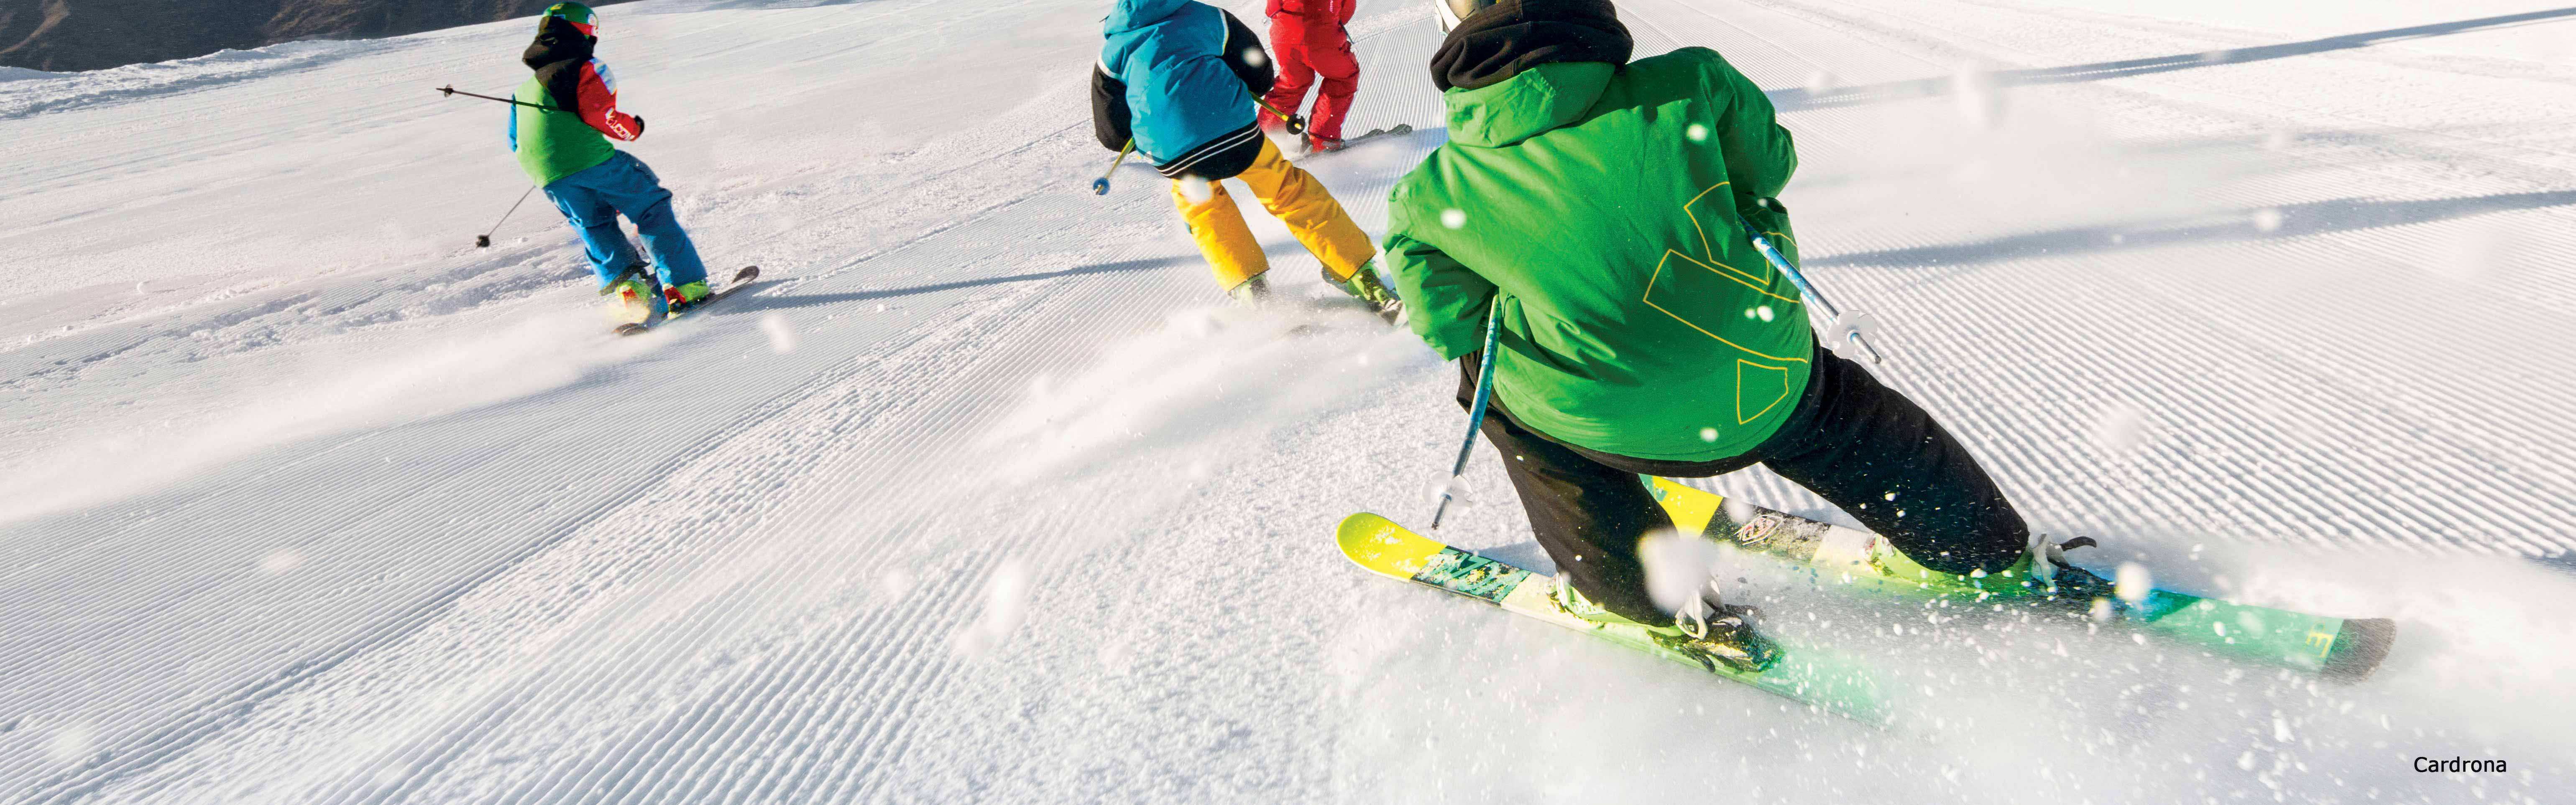 7 Day Queenstown Ski Holiday Package Deal NZ Ski Packages